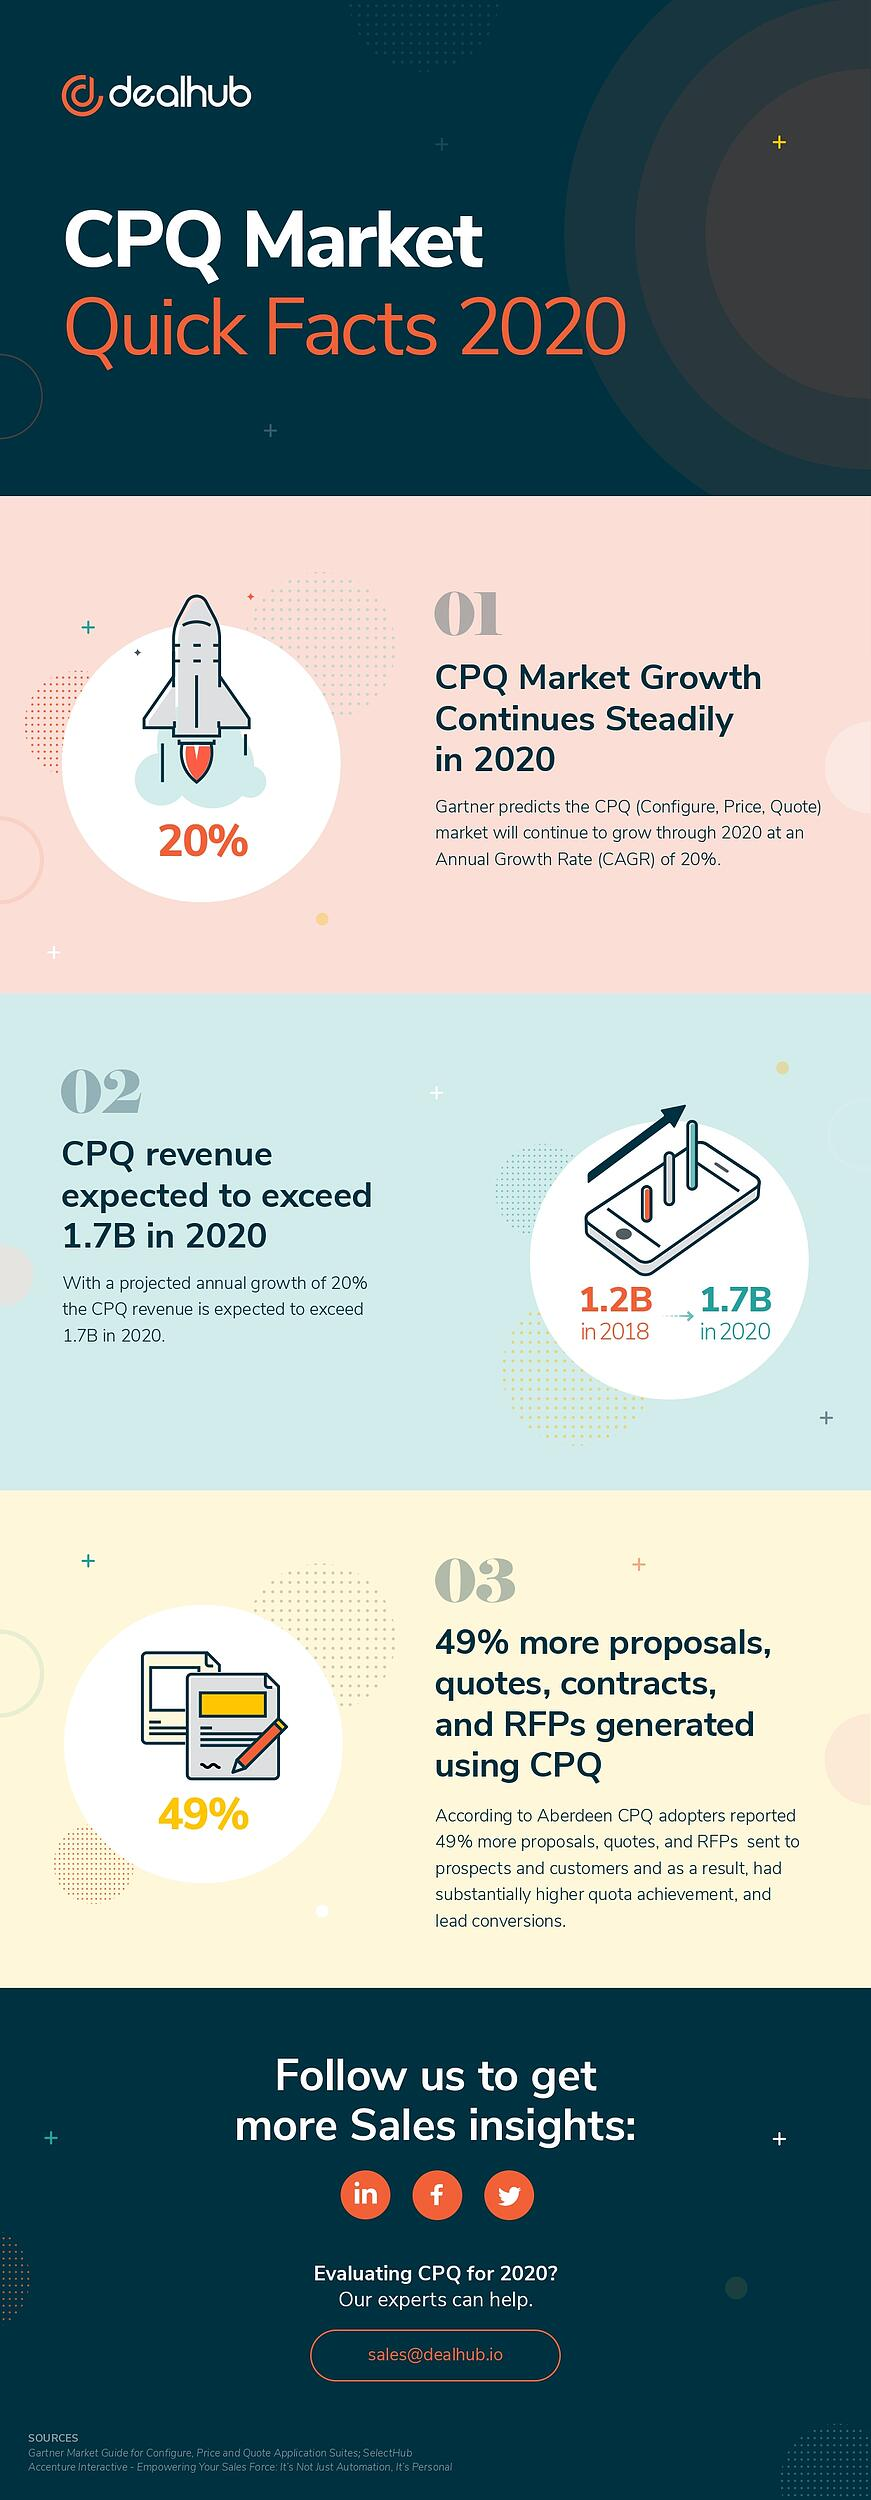 CPQ Market Quick Facts for 2020 Infographic-1